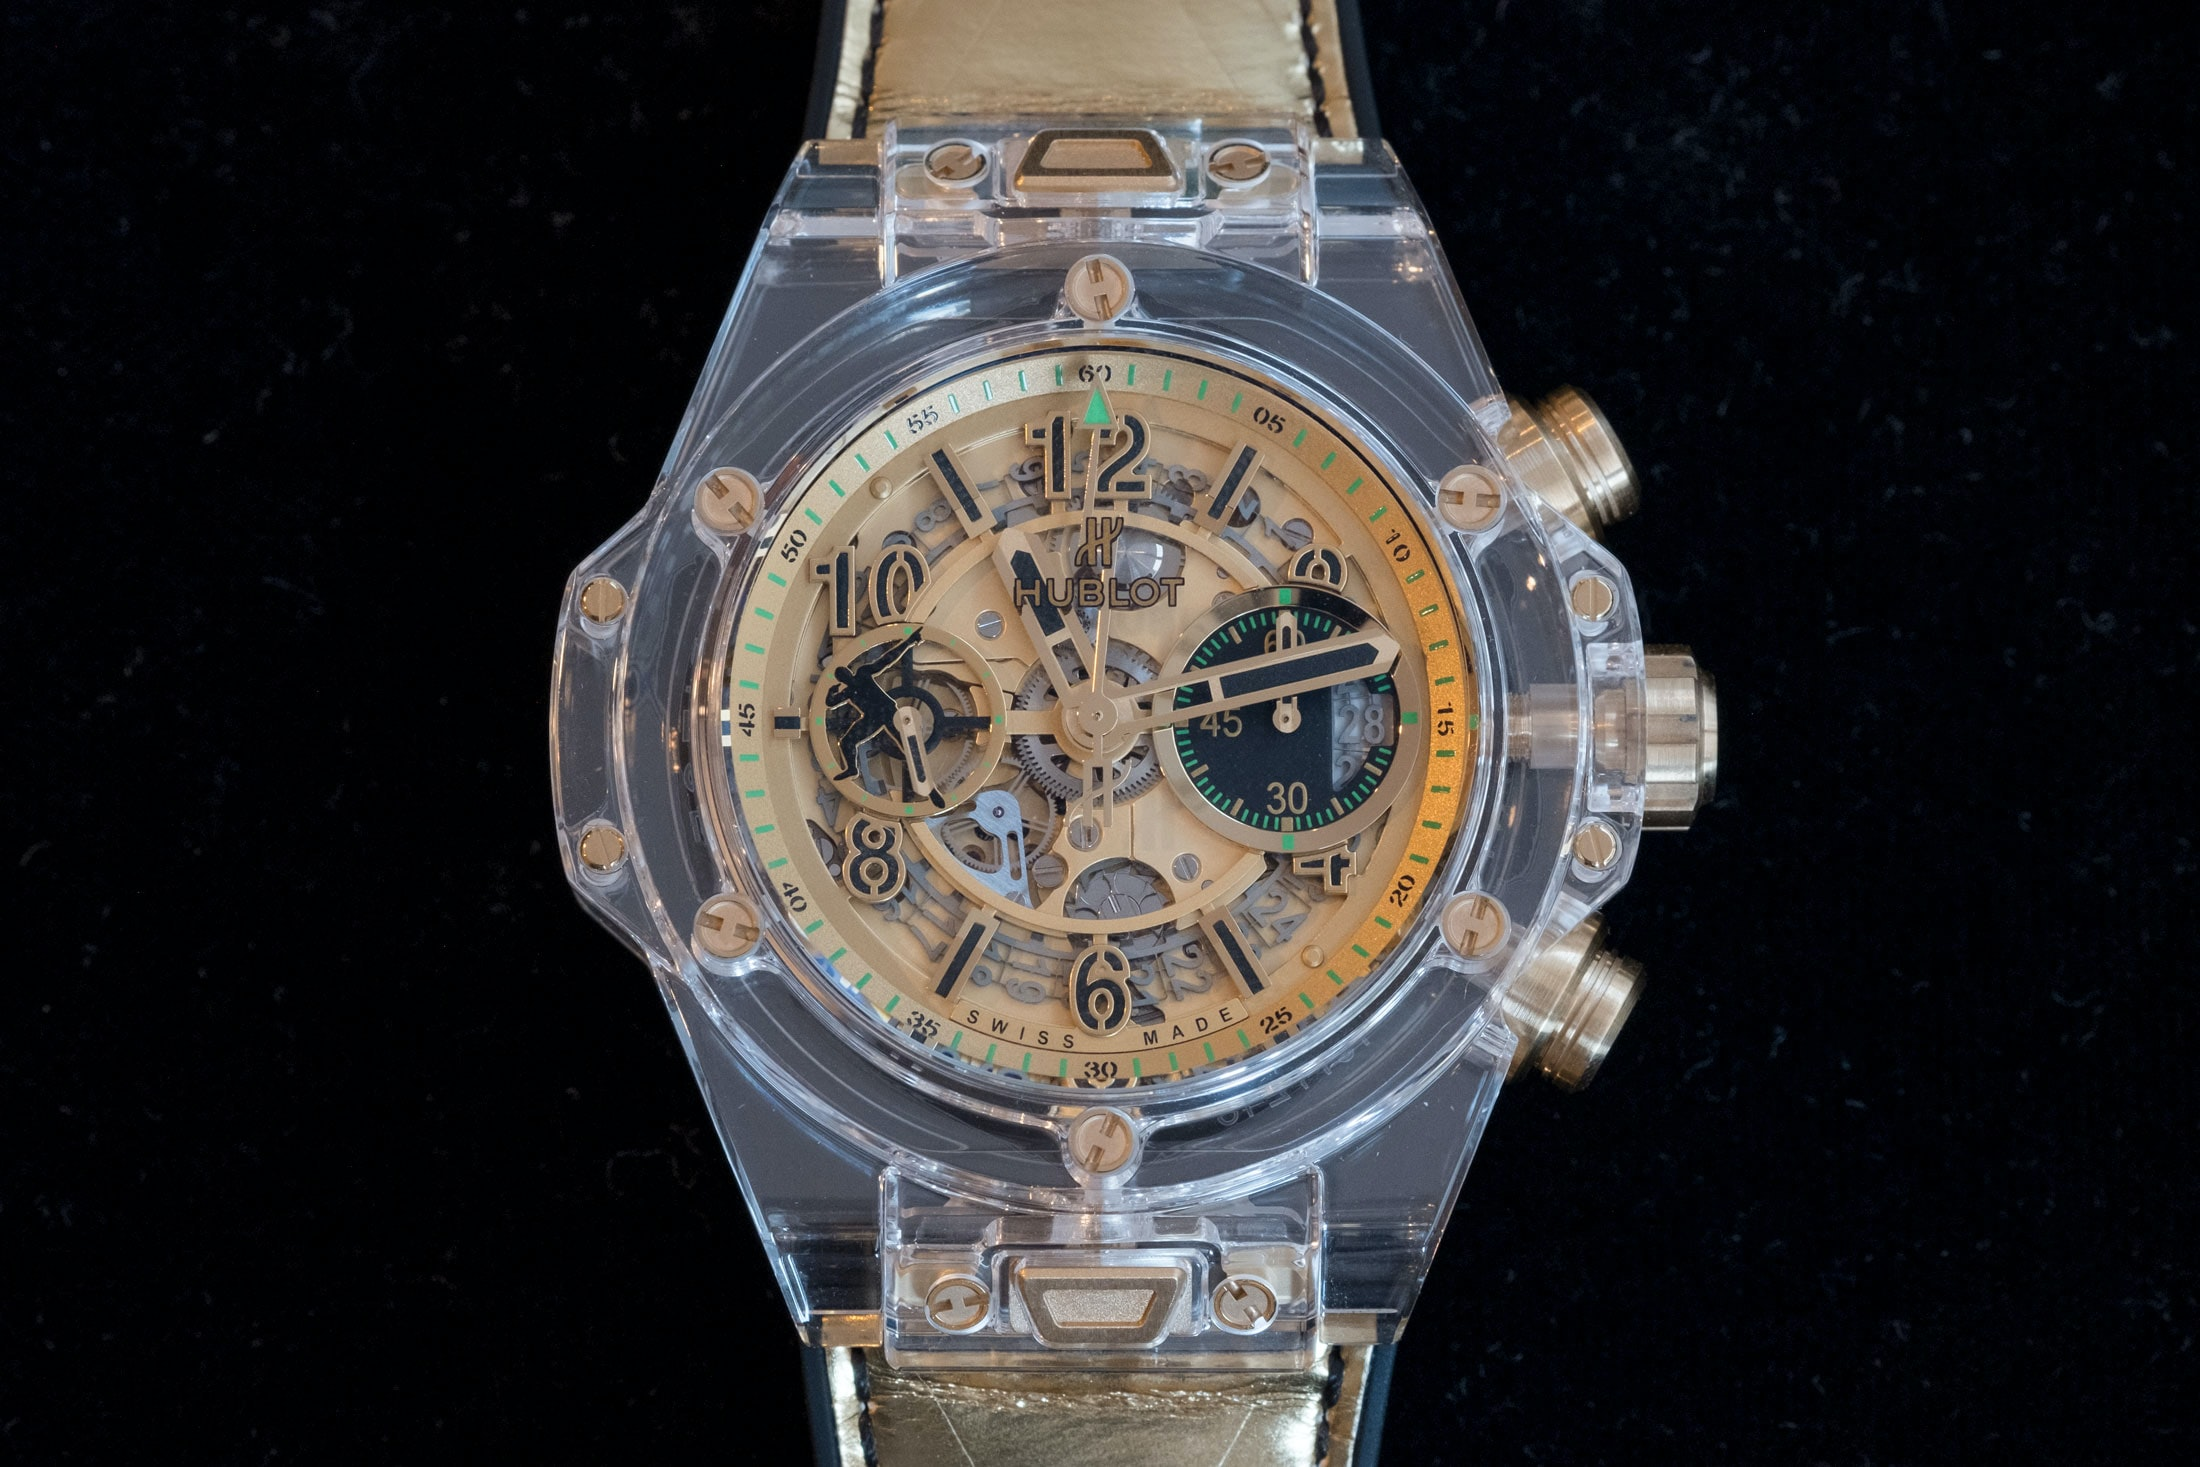 hublot usain bolt big bang only watch  Auction Report: My Eleven Favorite Watches From Only Watch 2017 hublot1